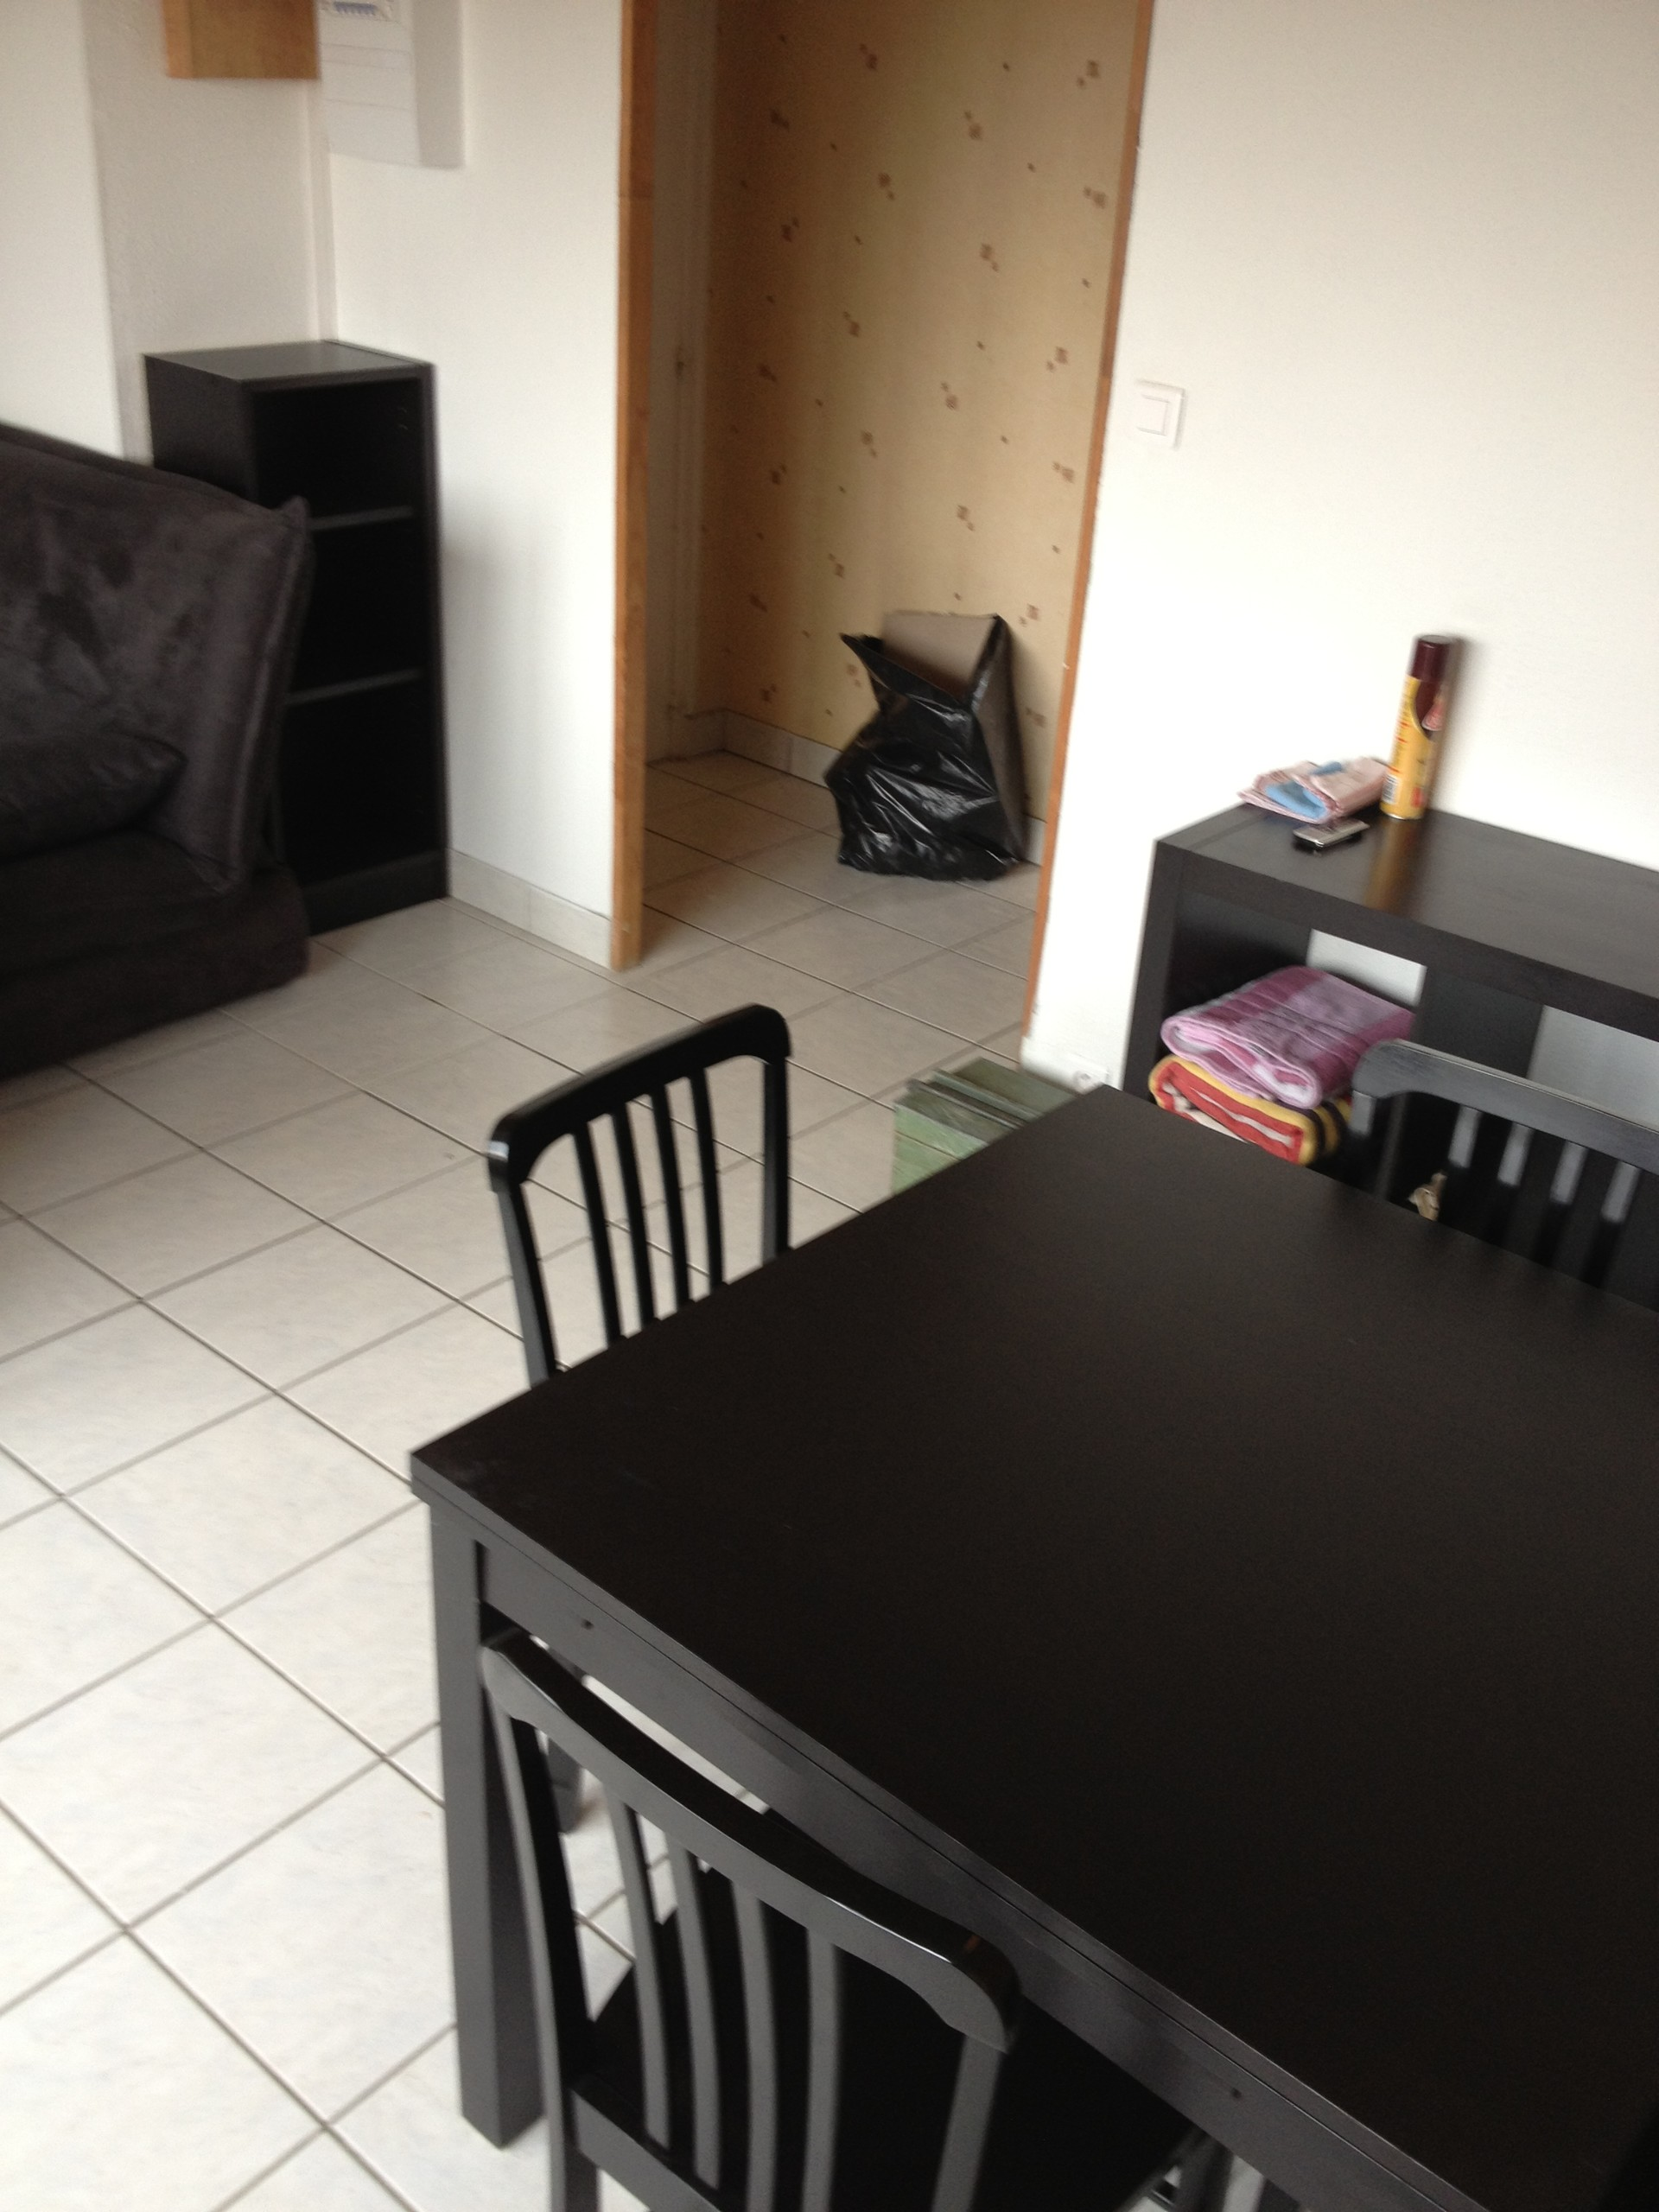 Flat near center town : 45 square meters (furnished with kitchen